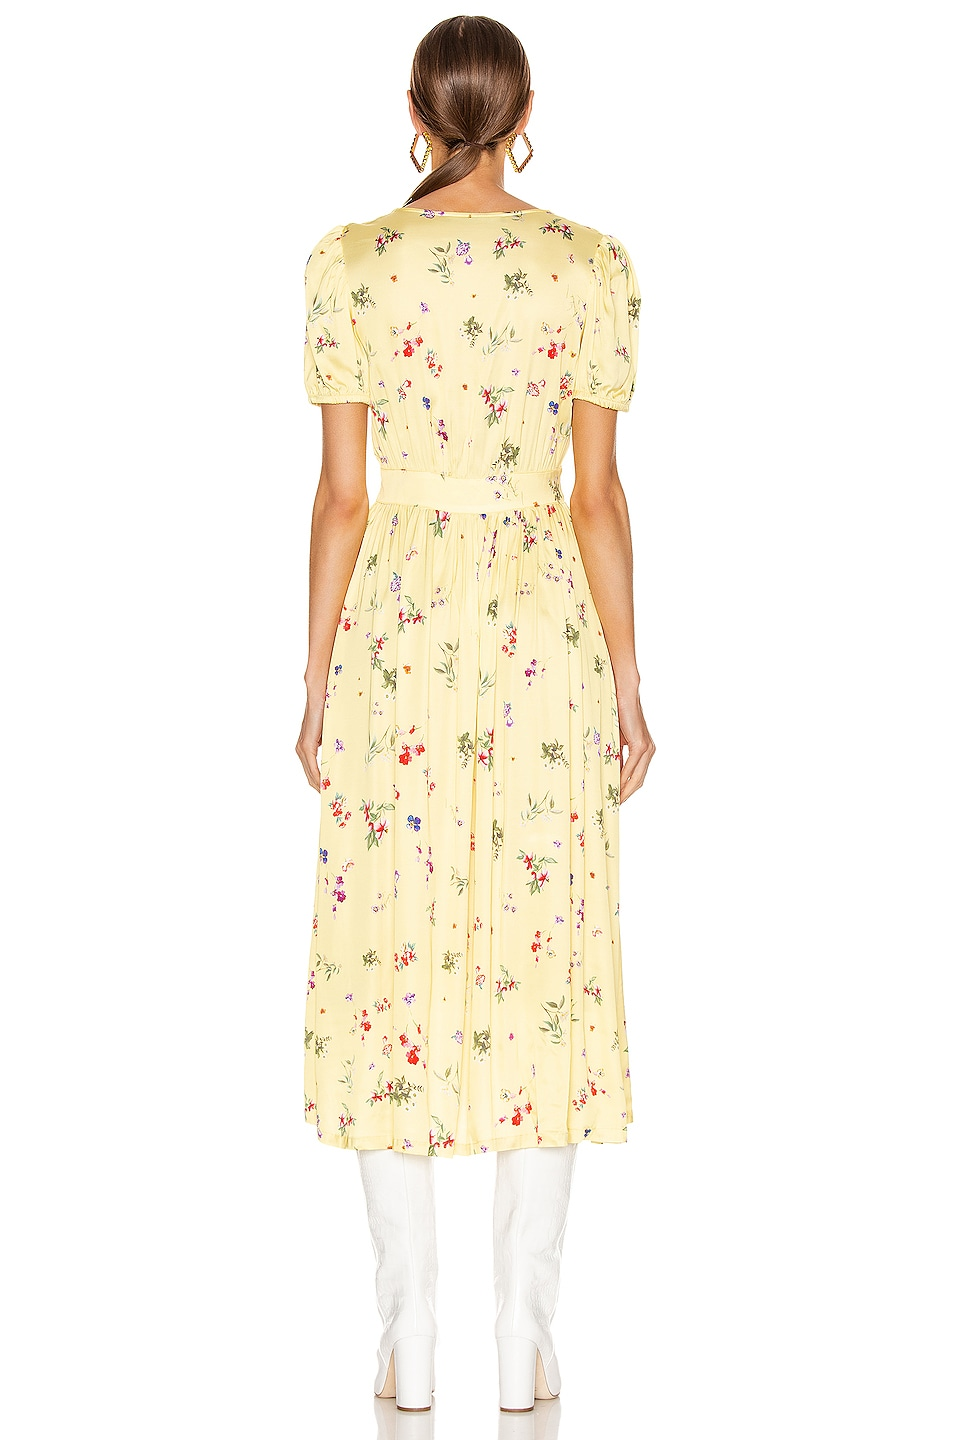 andamane cassandra midi dress in small floral yellow fwrd. Black Bedroom Furniture Sets. Home Design Ideas